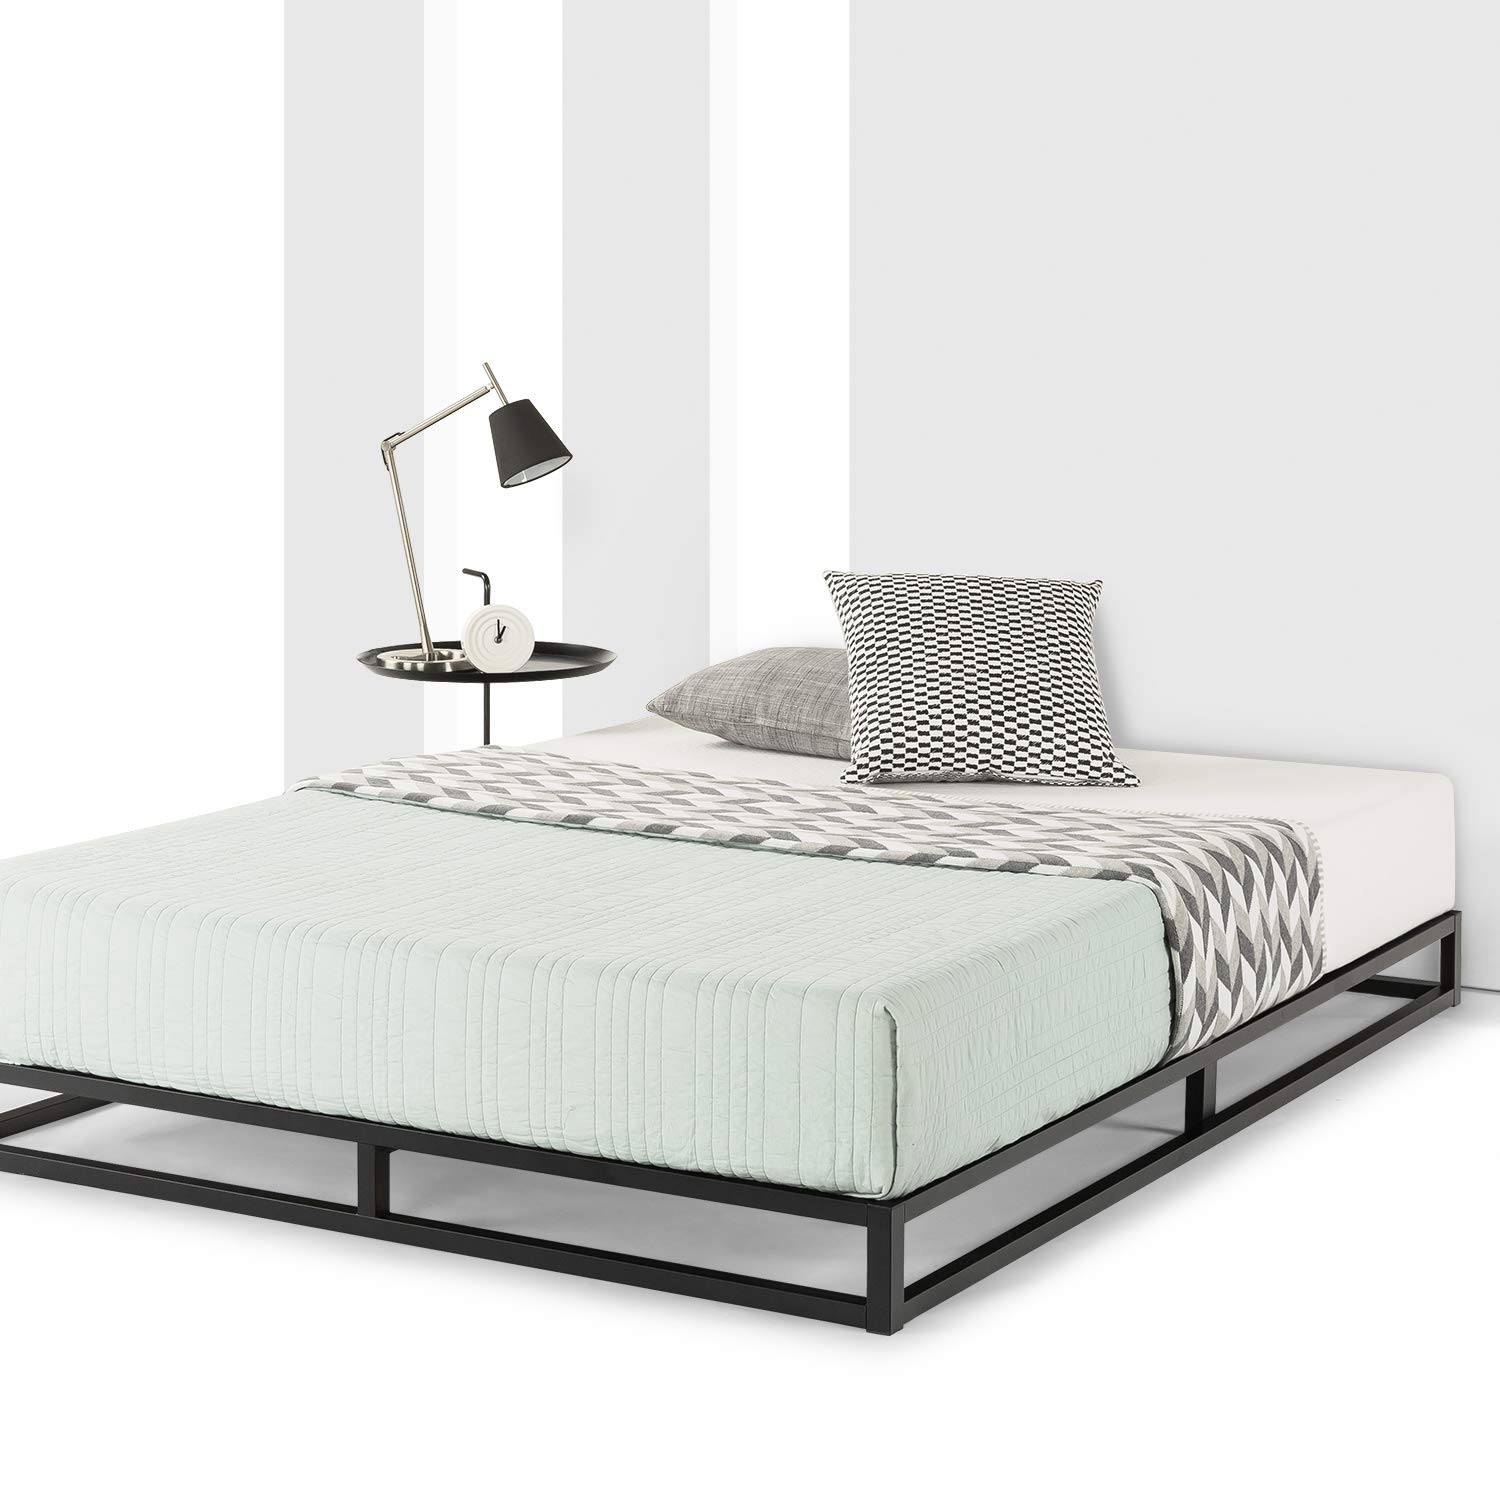 Mattress Queen Bed Frame